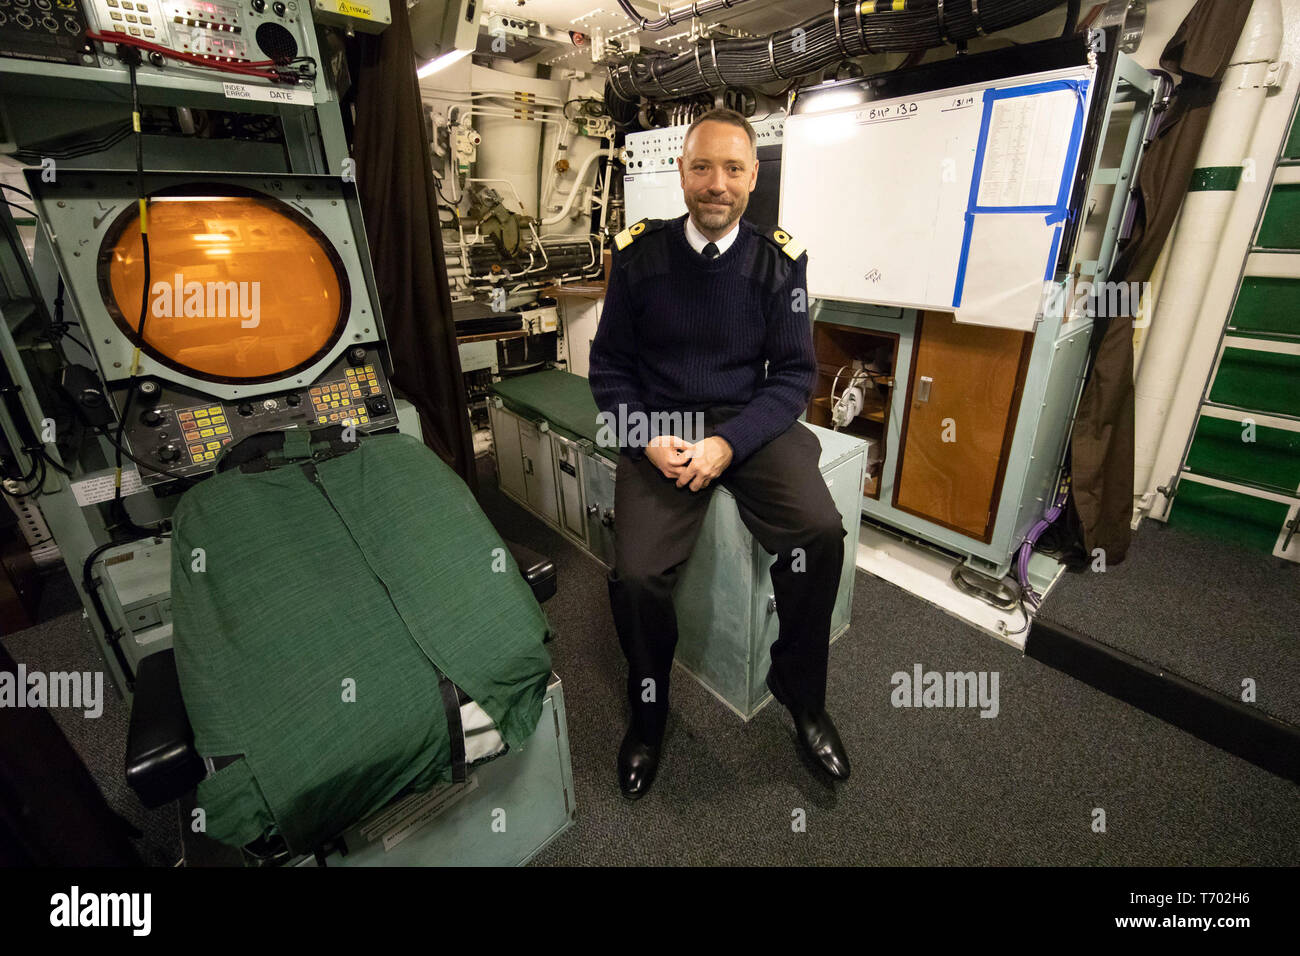 Commodore Bob Anstey, on board HMS Vigilant at HM Naval Base Clyde, Faslane, the Vanguard-class submarine carries the UK's Trident nuclear deterrent. - Stock Image